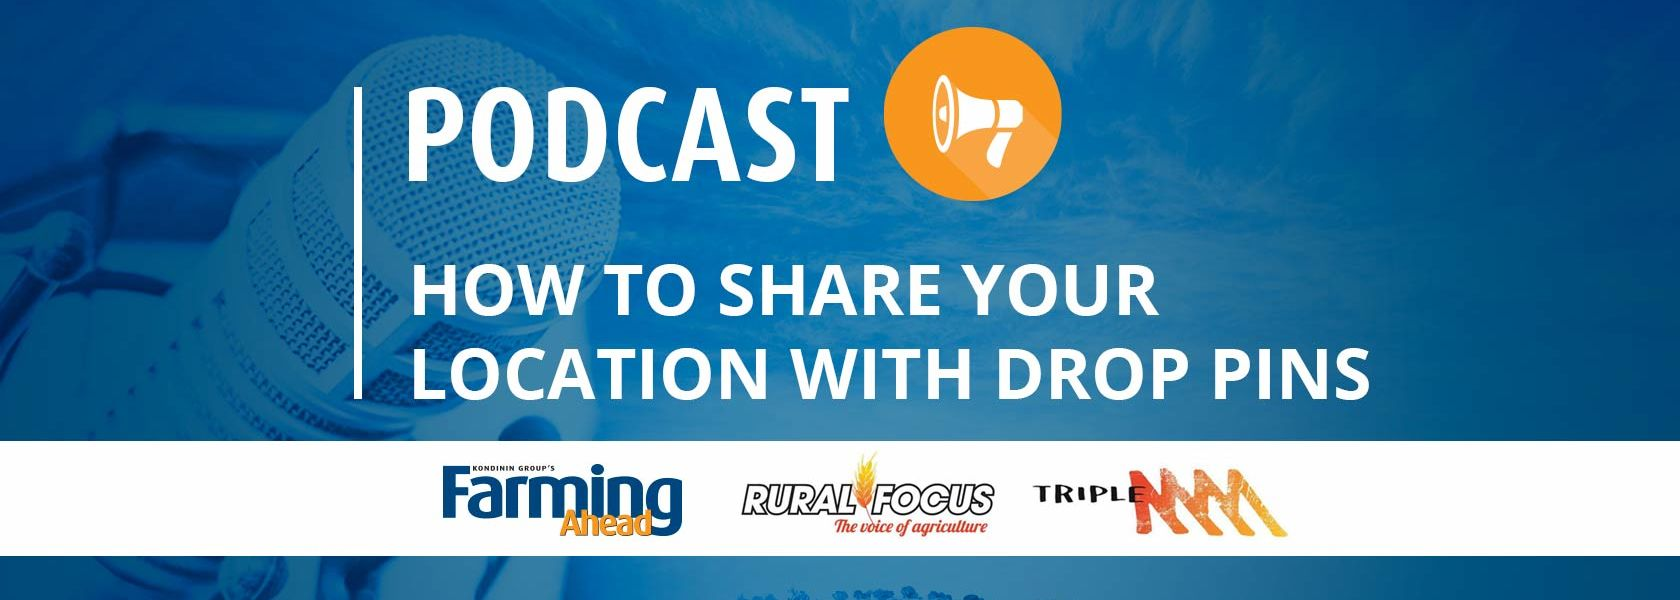 Podcast: How to share your location with drop pins